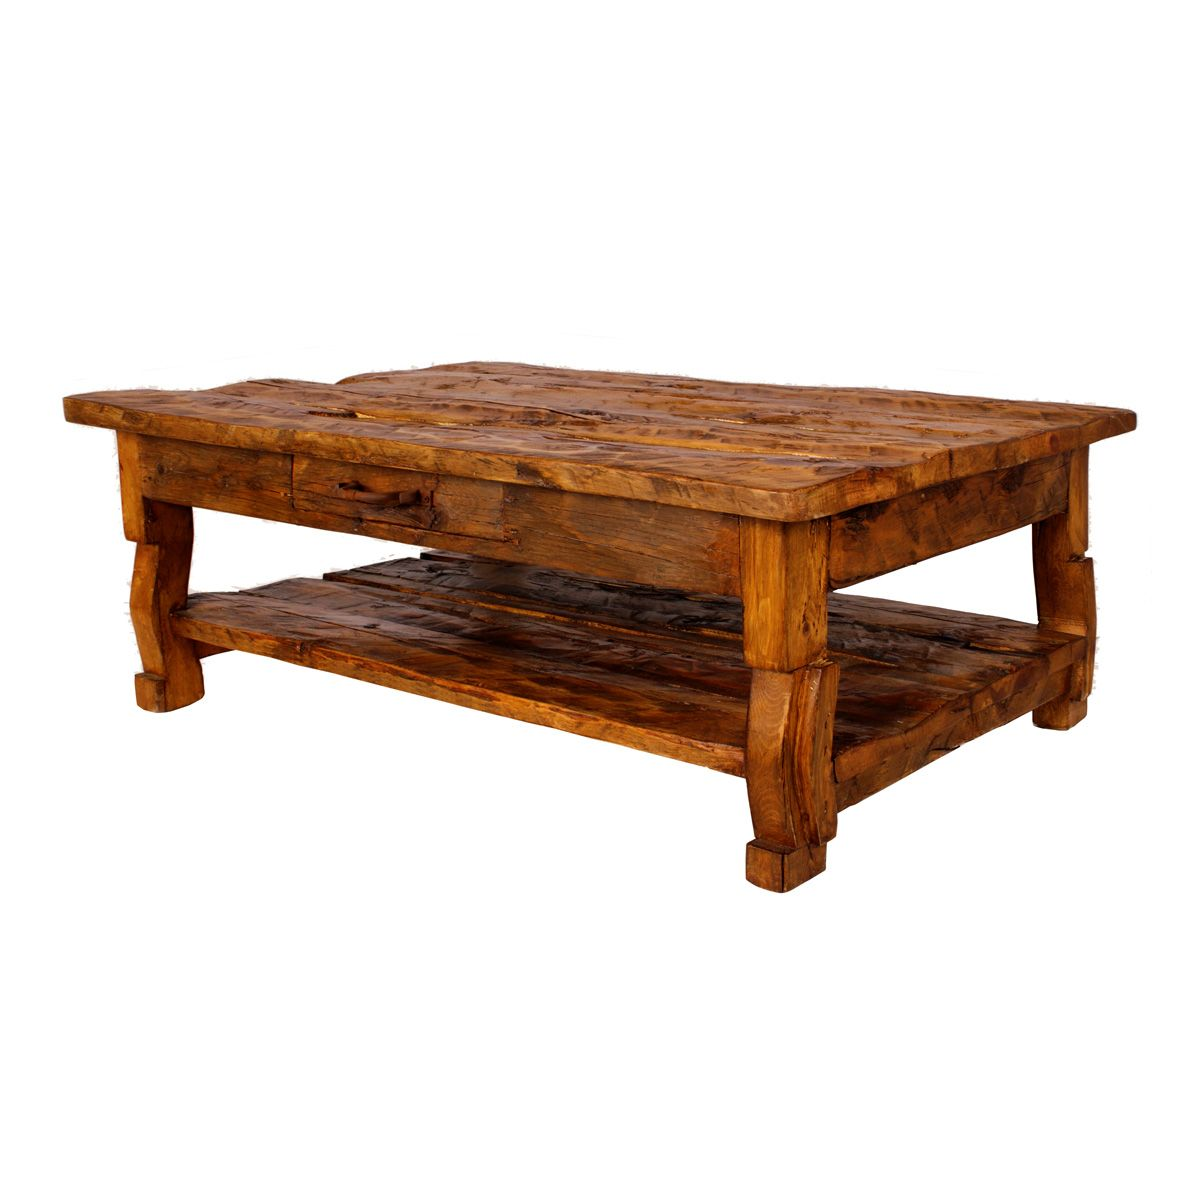 - Rustic Tables: Old West Pine Coffee Table